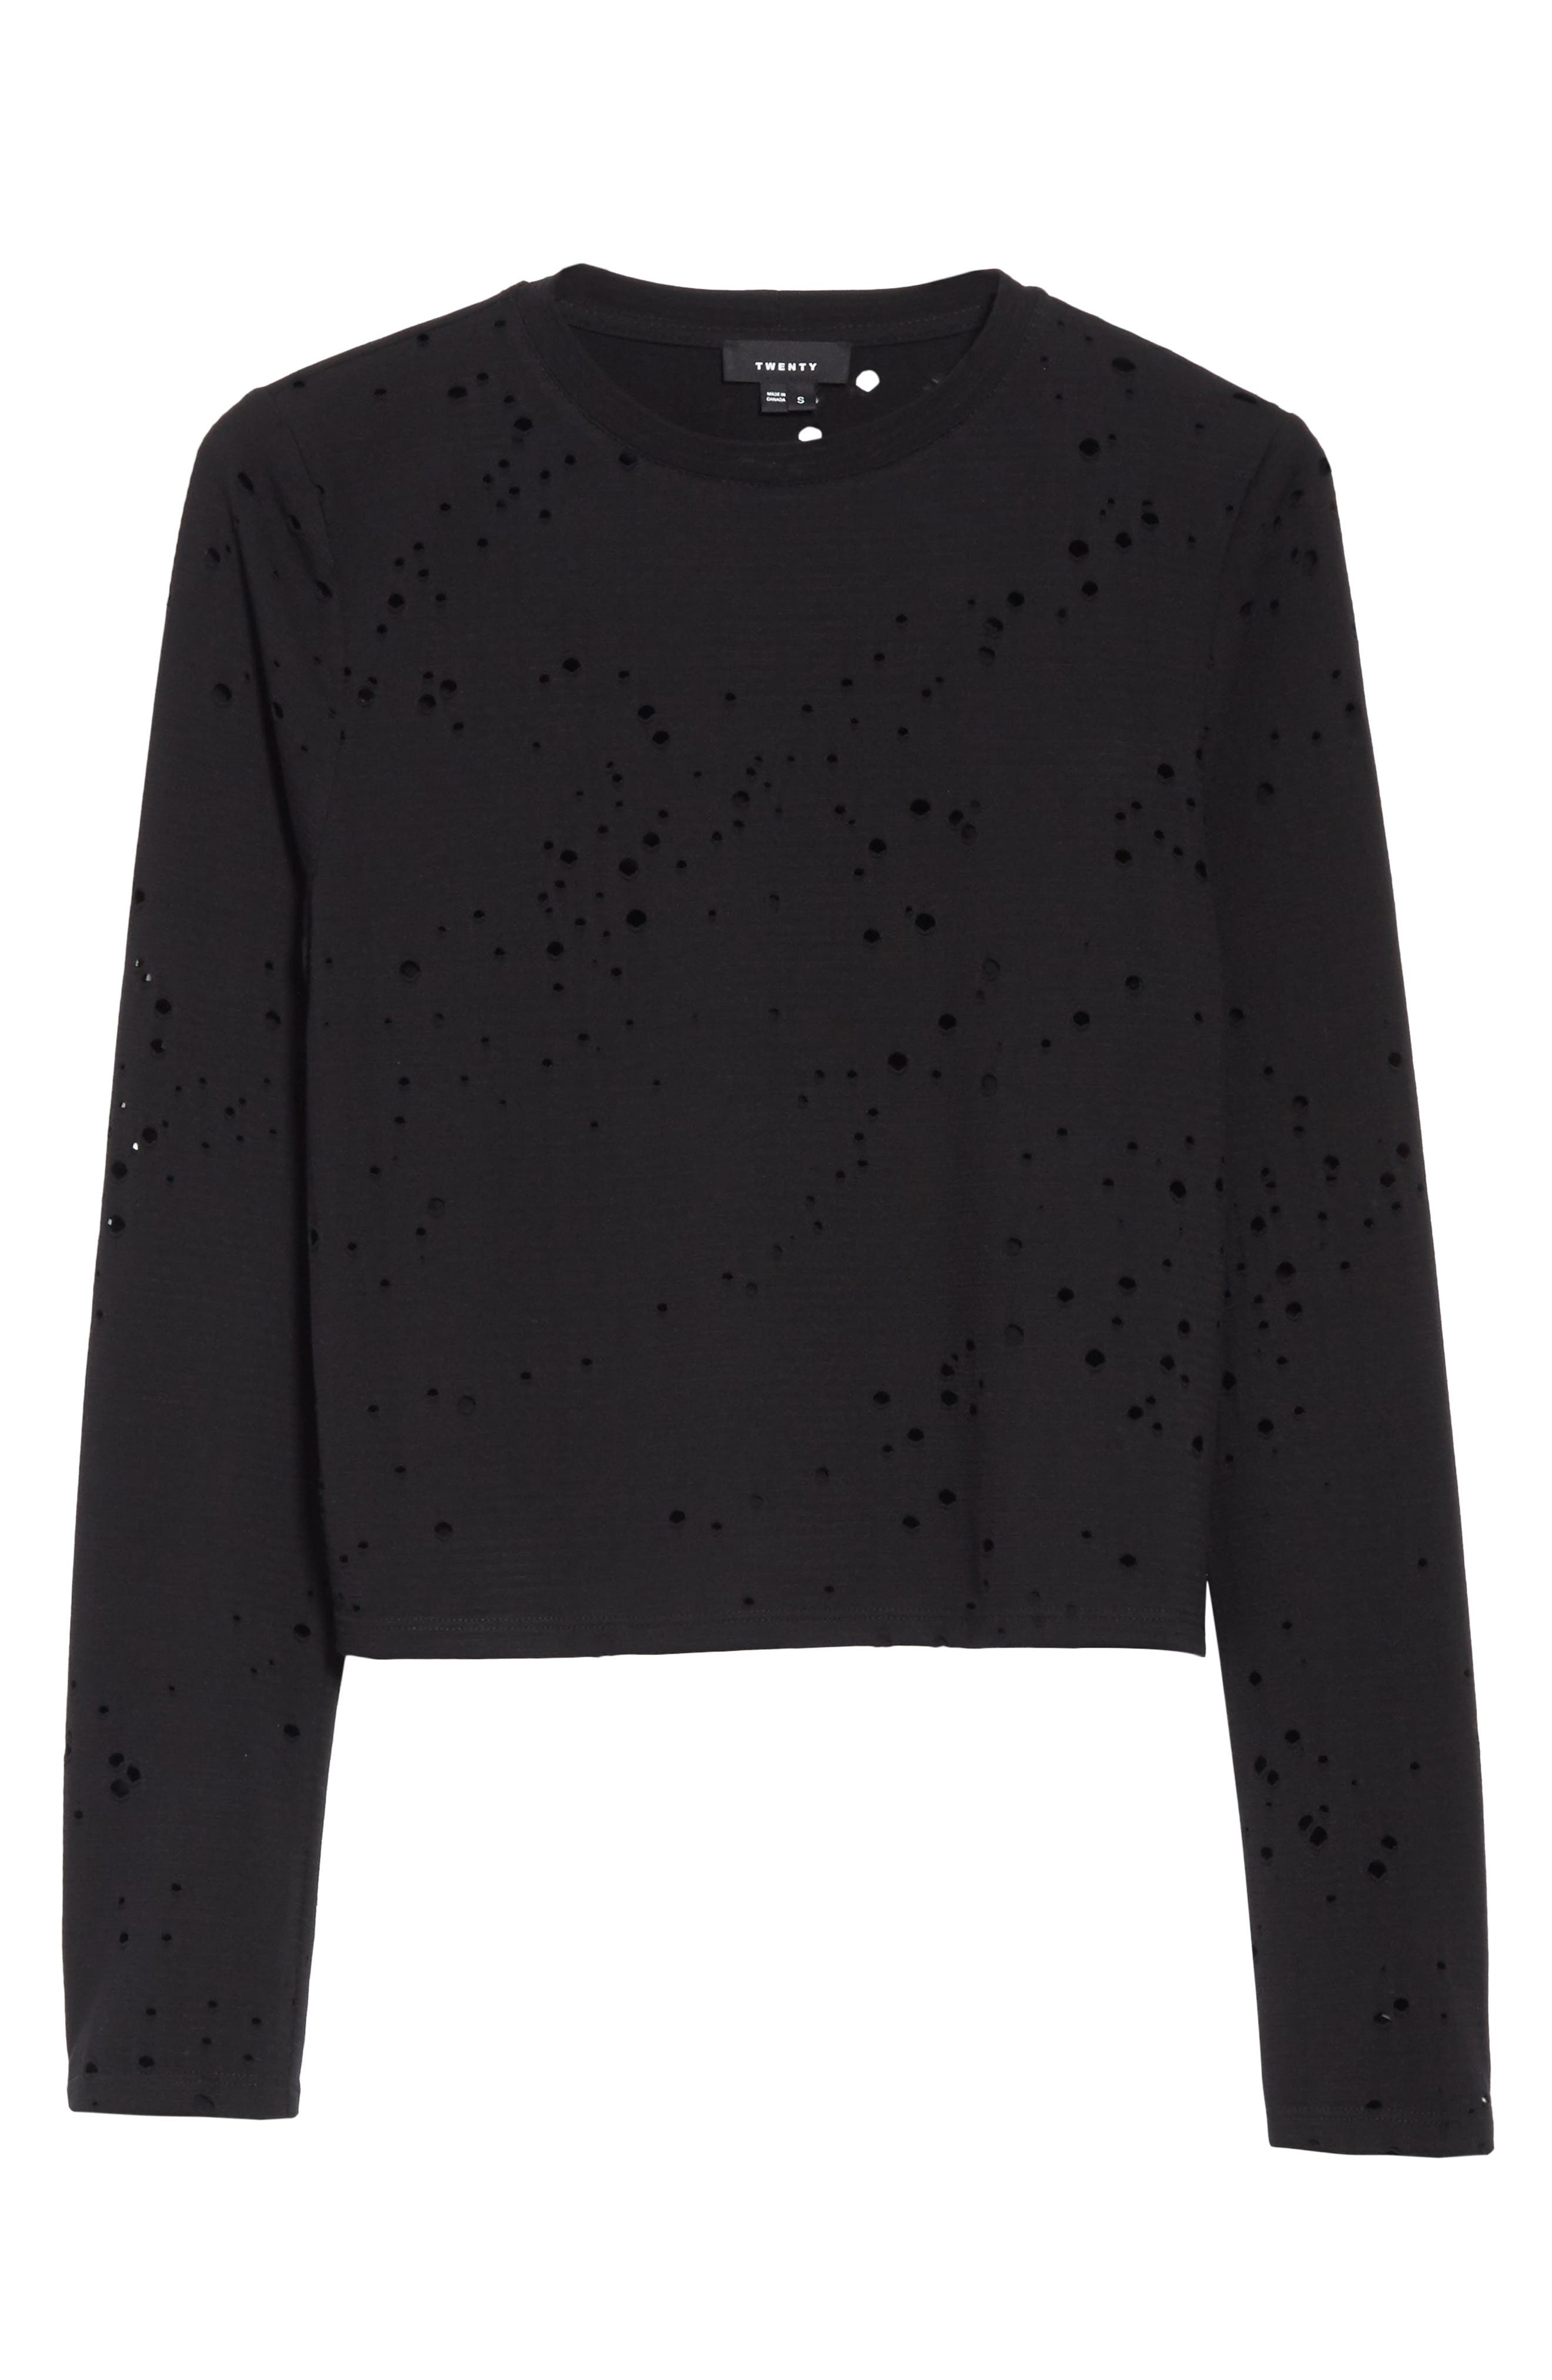 Waverly Perforated Crop Tee,                             Alternate thumbnail 6, color,                             001